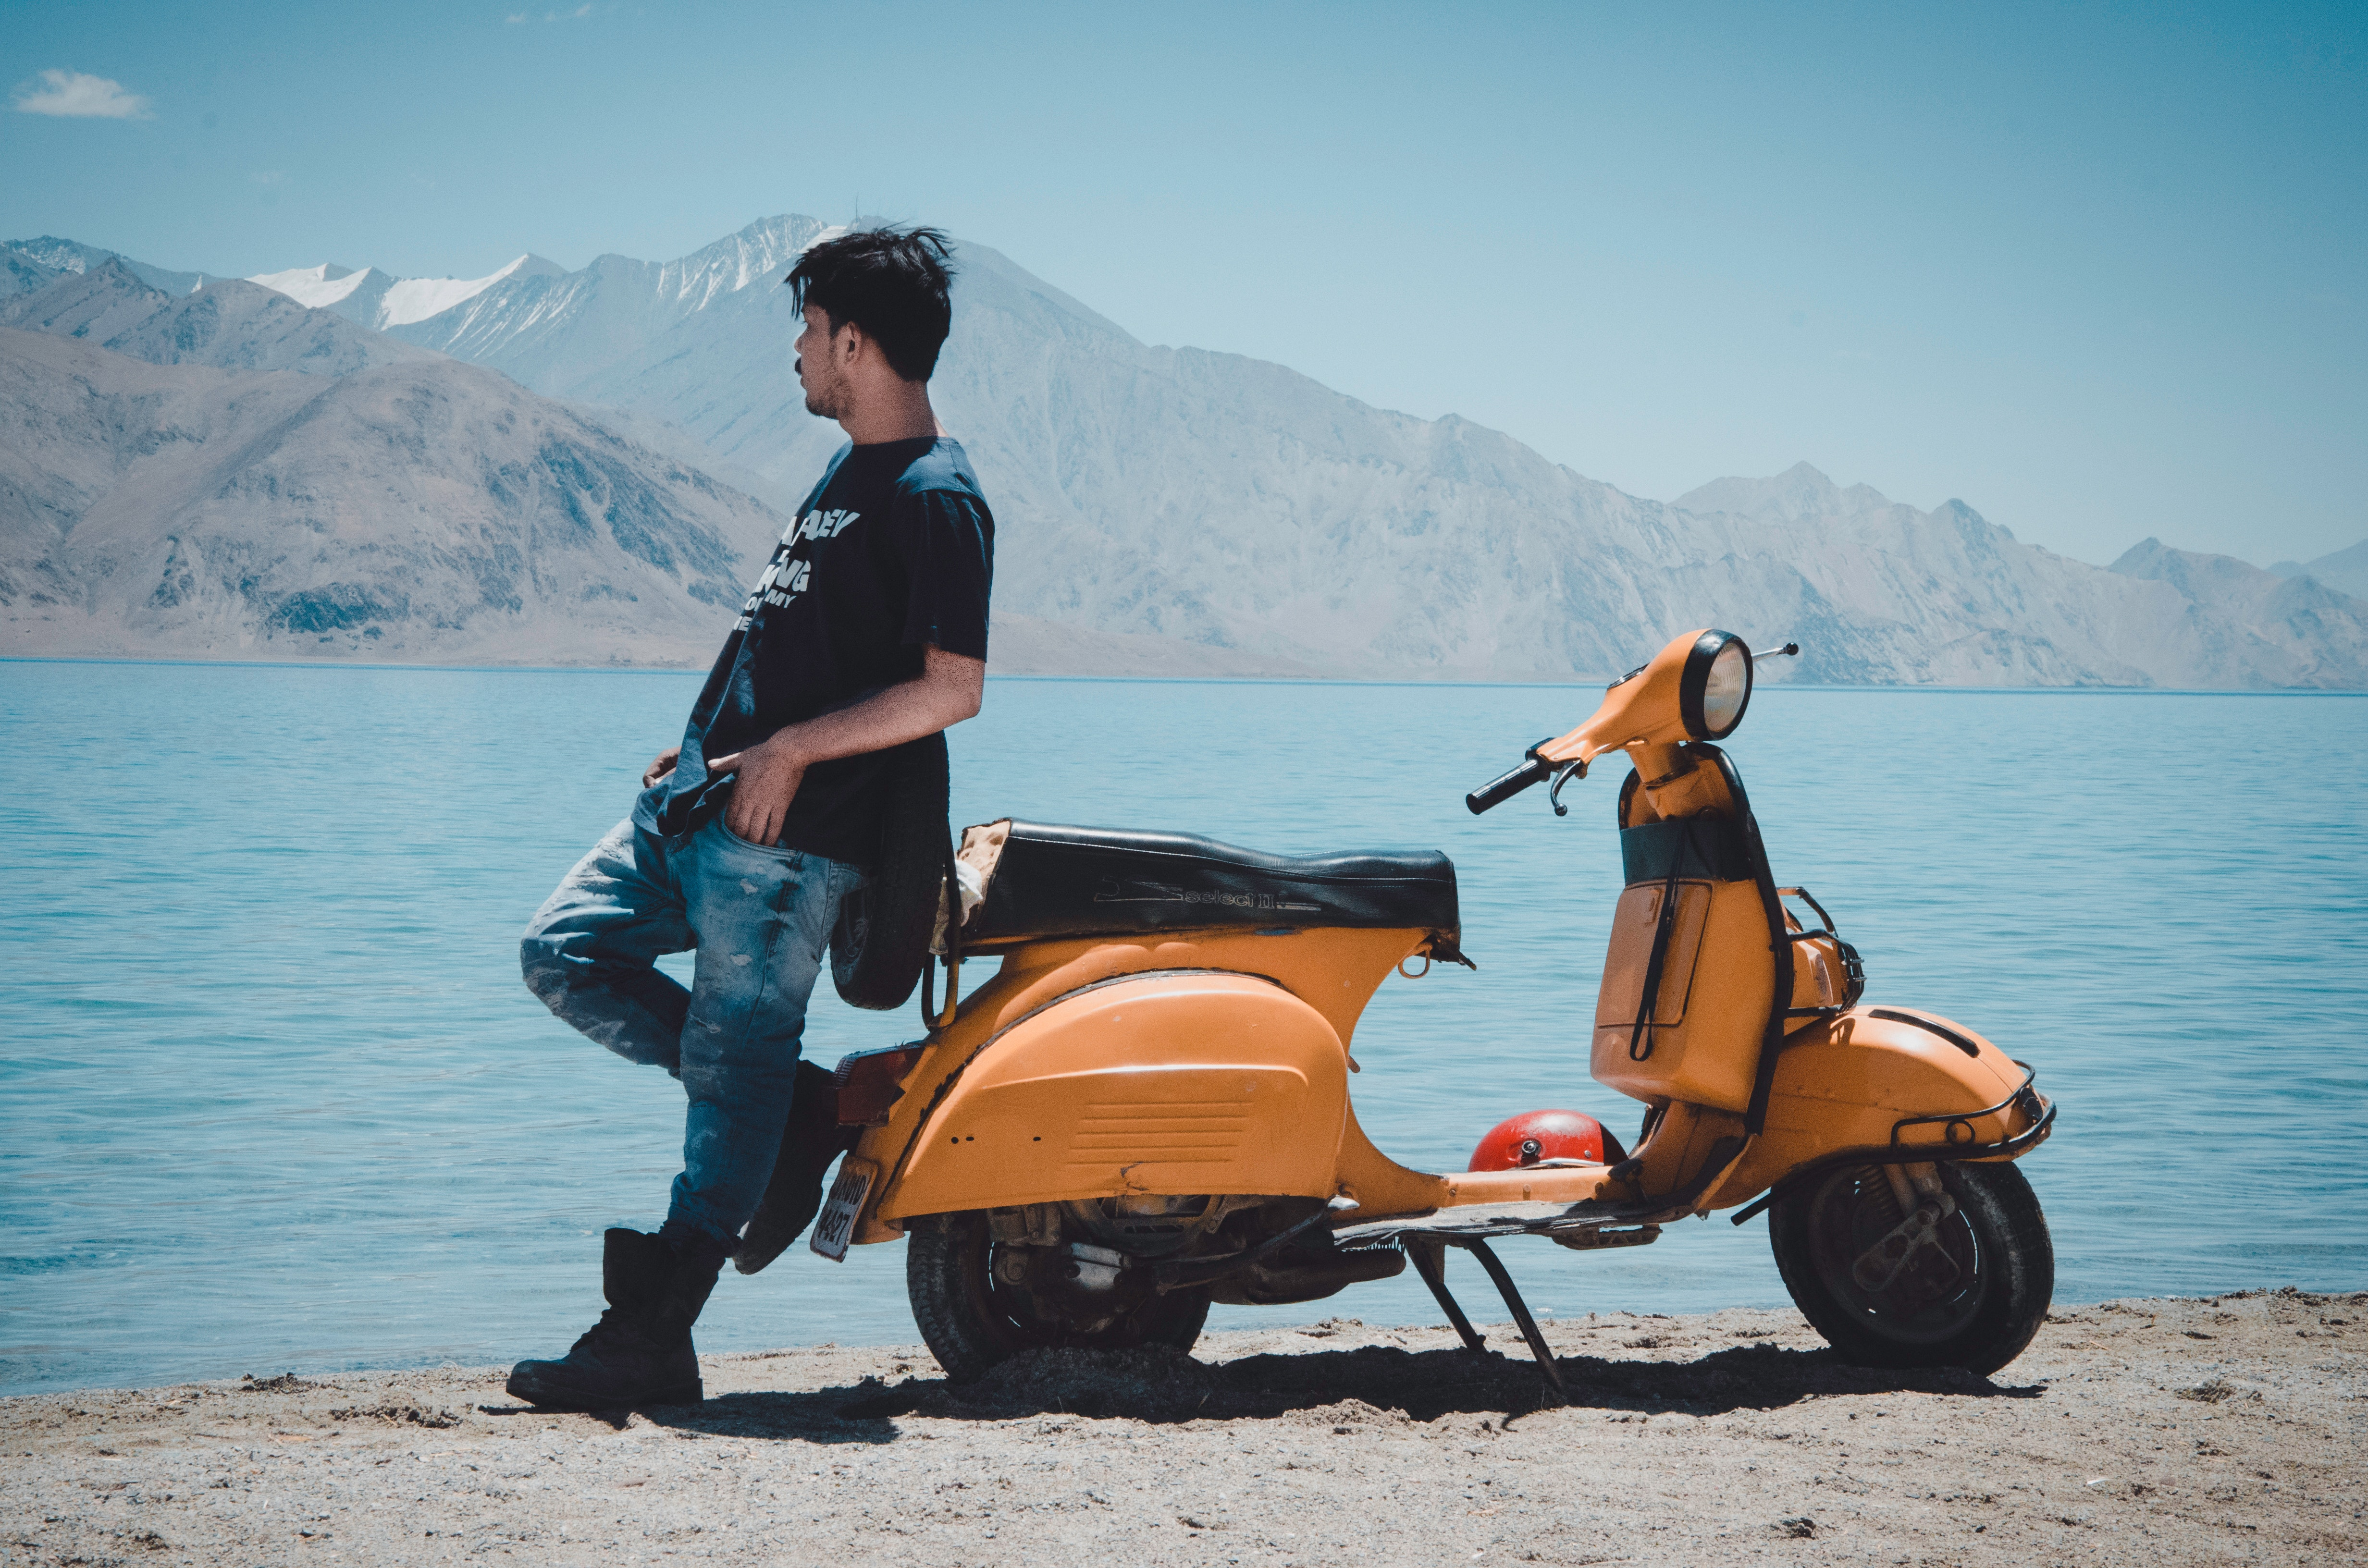 Man leaning against orange scooter in front of ocean